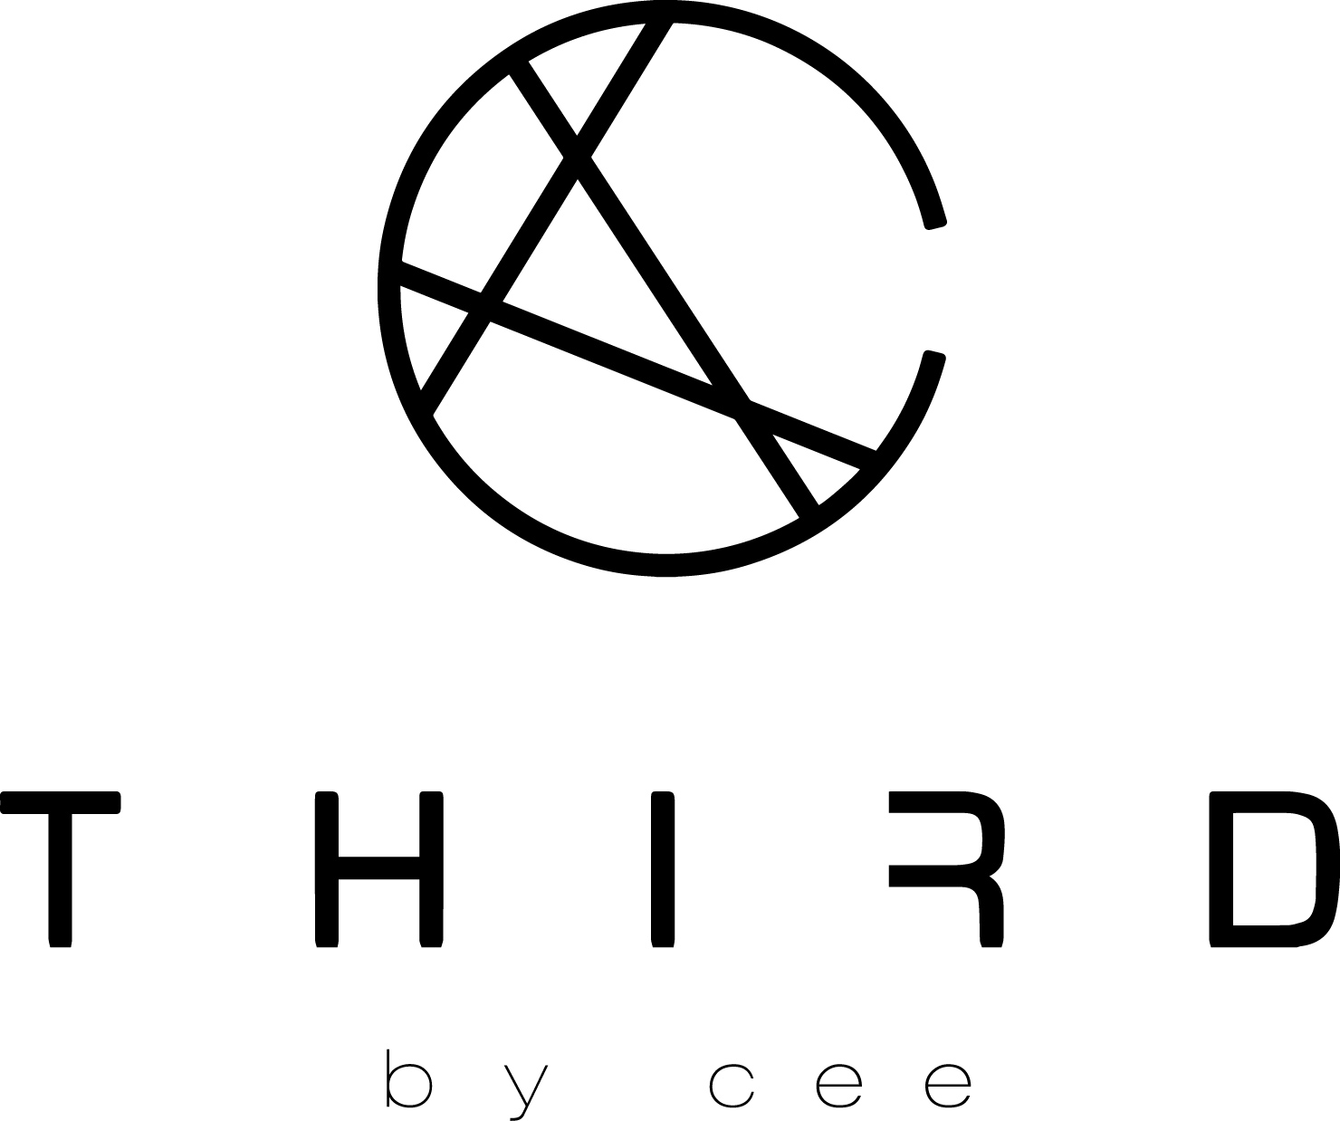 Third By Cee